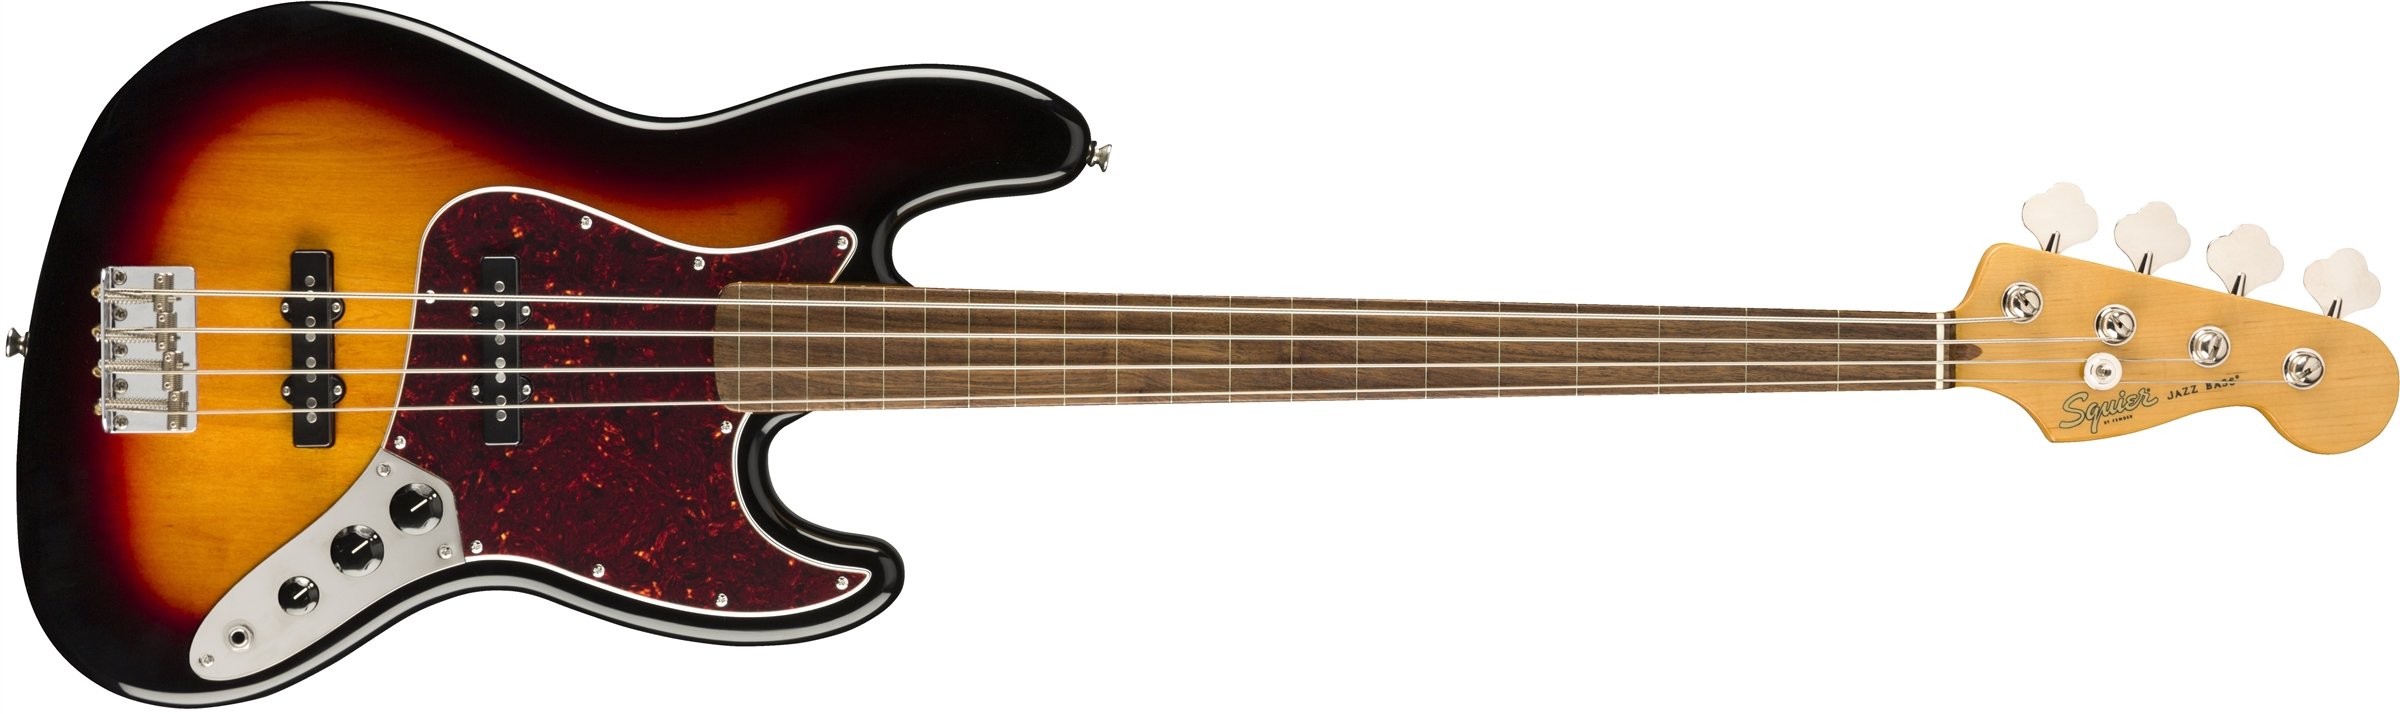 SQUIER-Classic-Vibe-60s-Jazz-Bass-FR-Fretless-LF-3-Color-Sunburst-0374531500-sku-22877